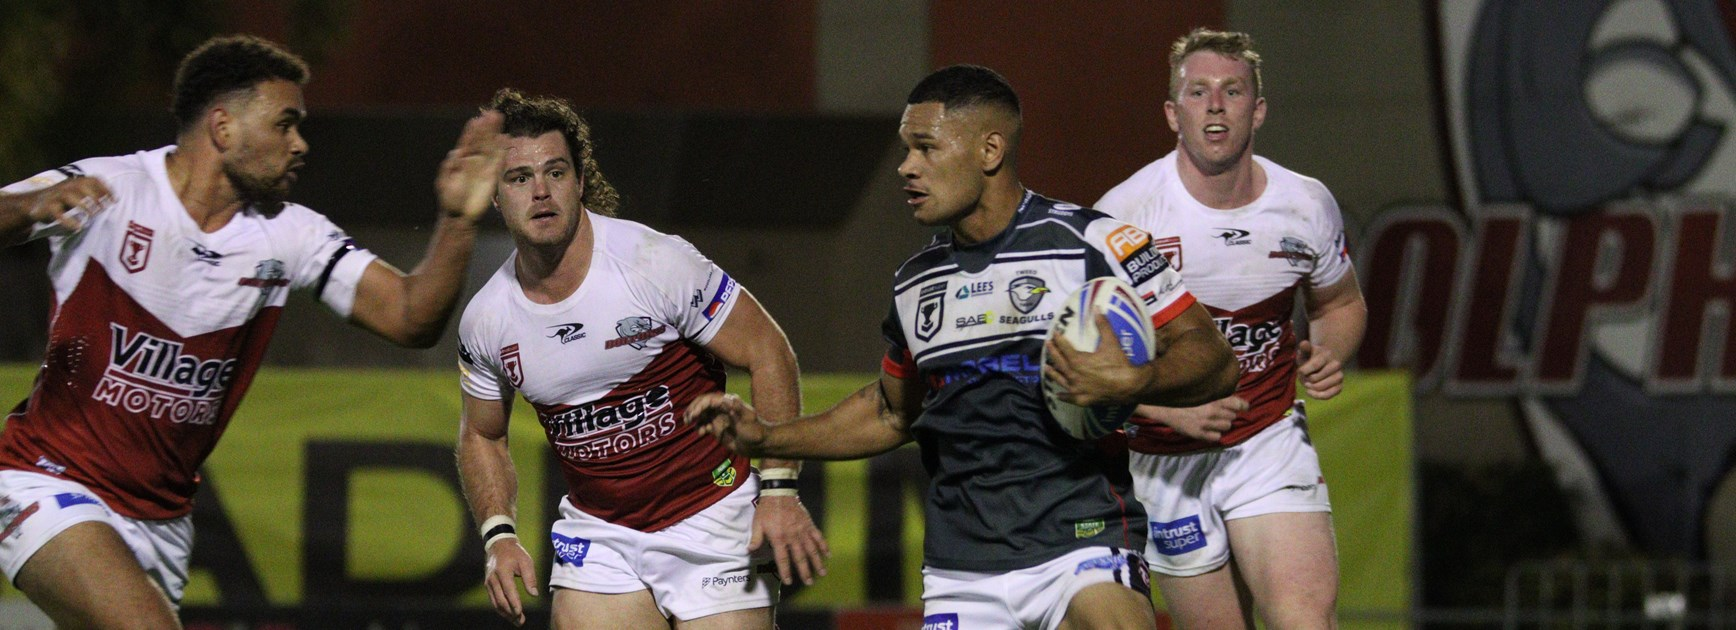 Tweed Seagulls prove too strong for Dolphins